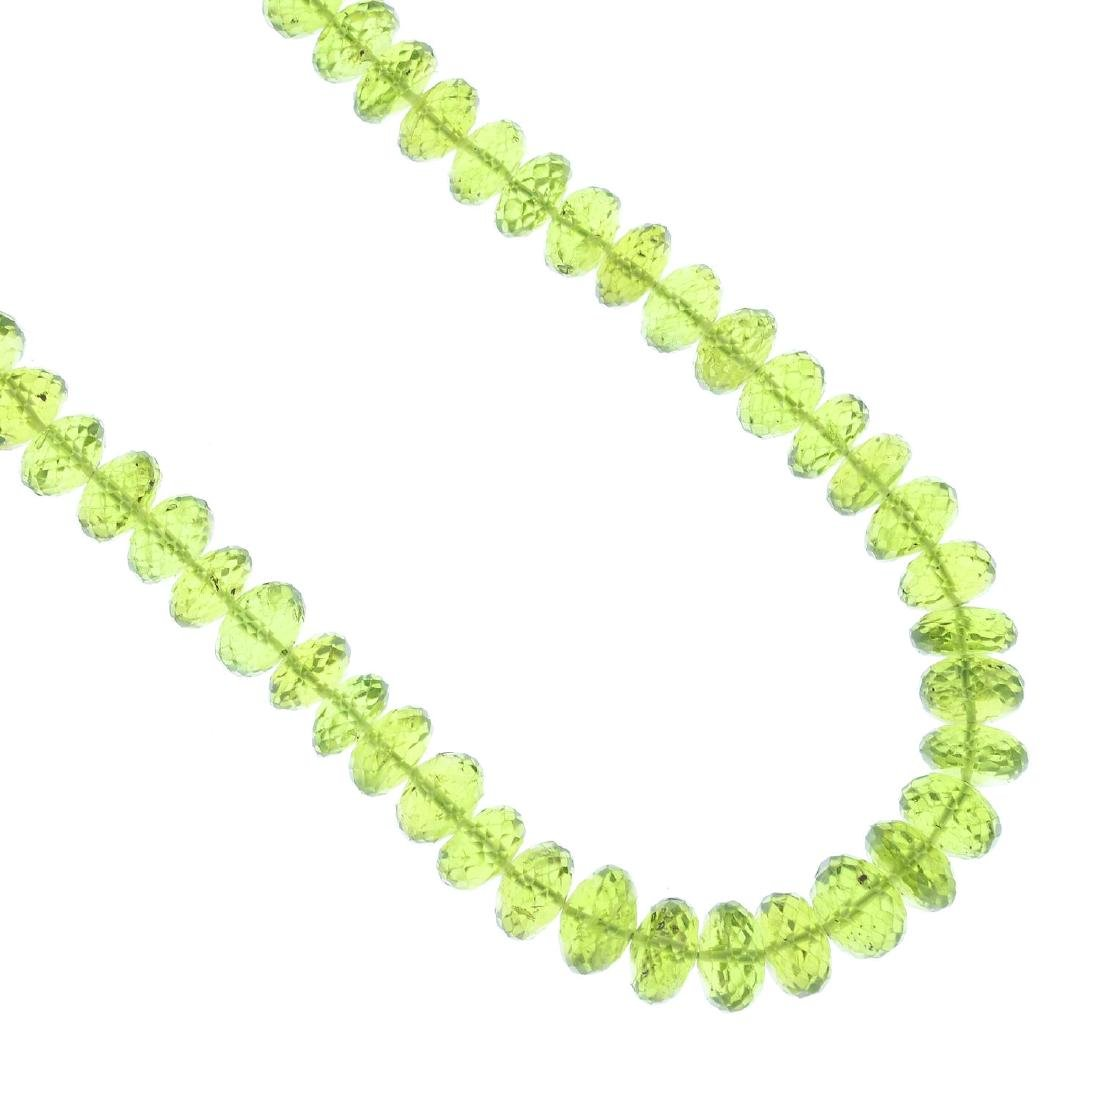 A peridot necklace. Designed as a single-row of faceted